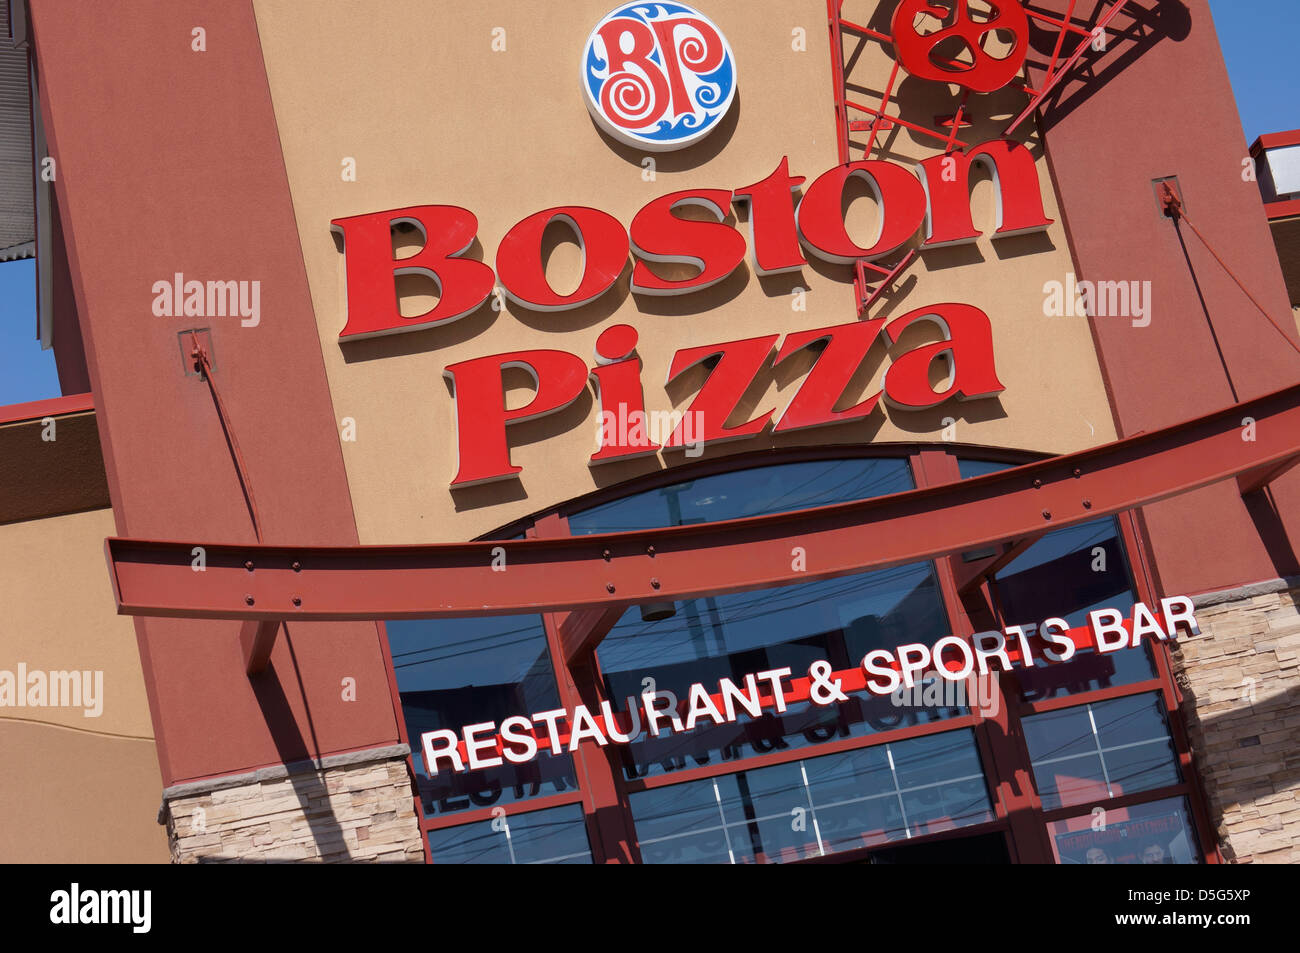 Boston Pizza Restaurant & Bar de deportes Imagen De Stock